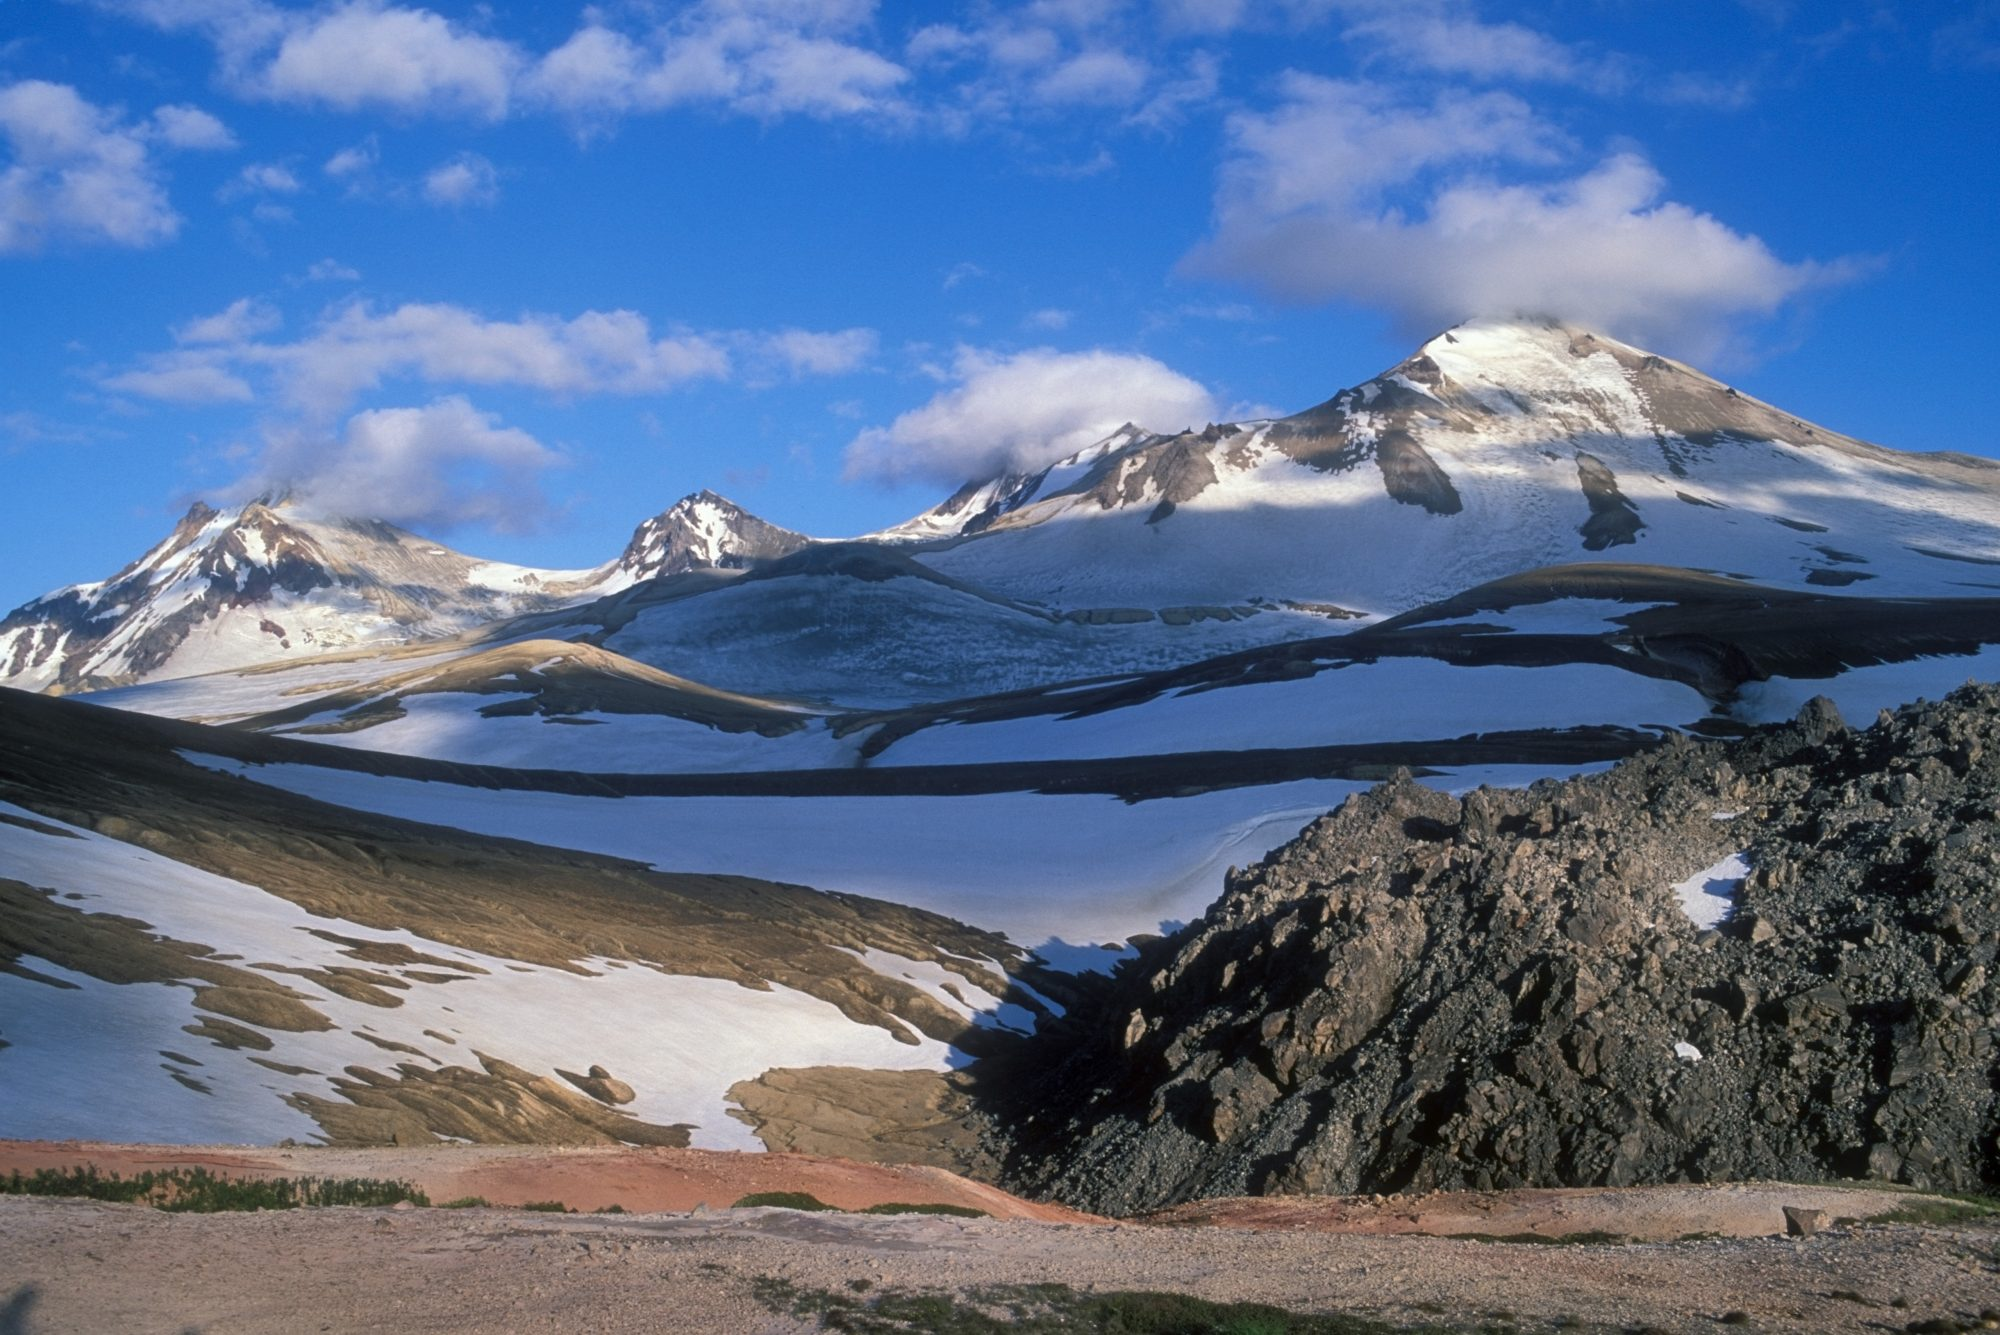 Scenic View Of The Novarupta Volcano Lava Dome With Mount Katmai And Trident Volcanoes In The Background In The Valley Of 10,000 Smokes, Katmai National Park